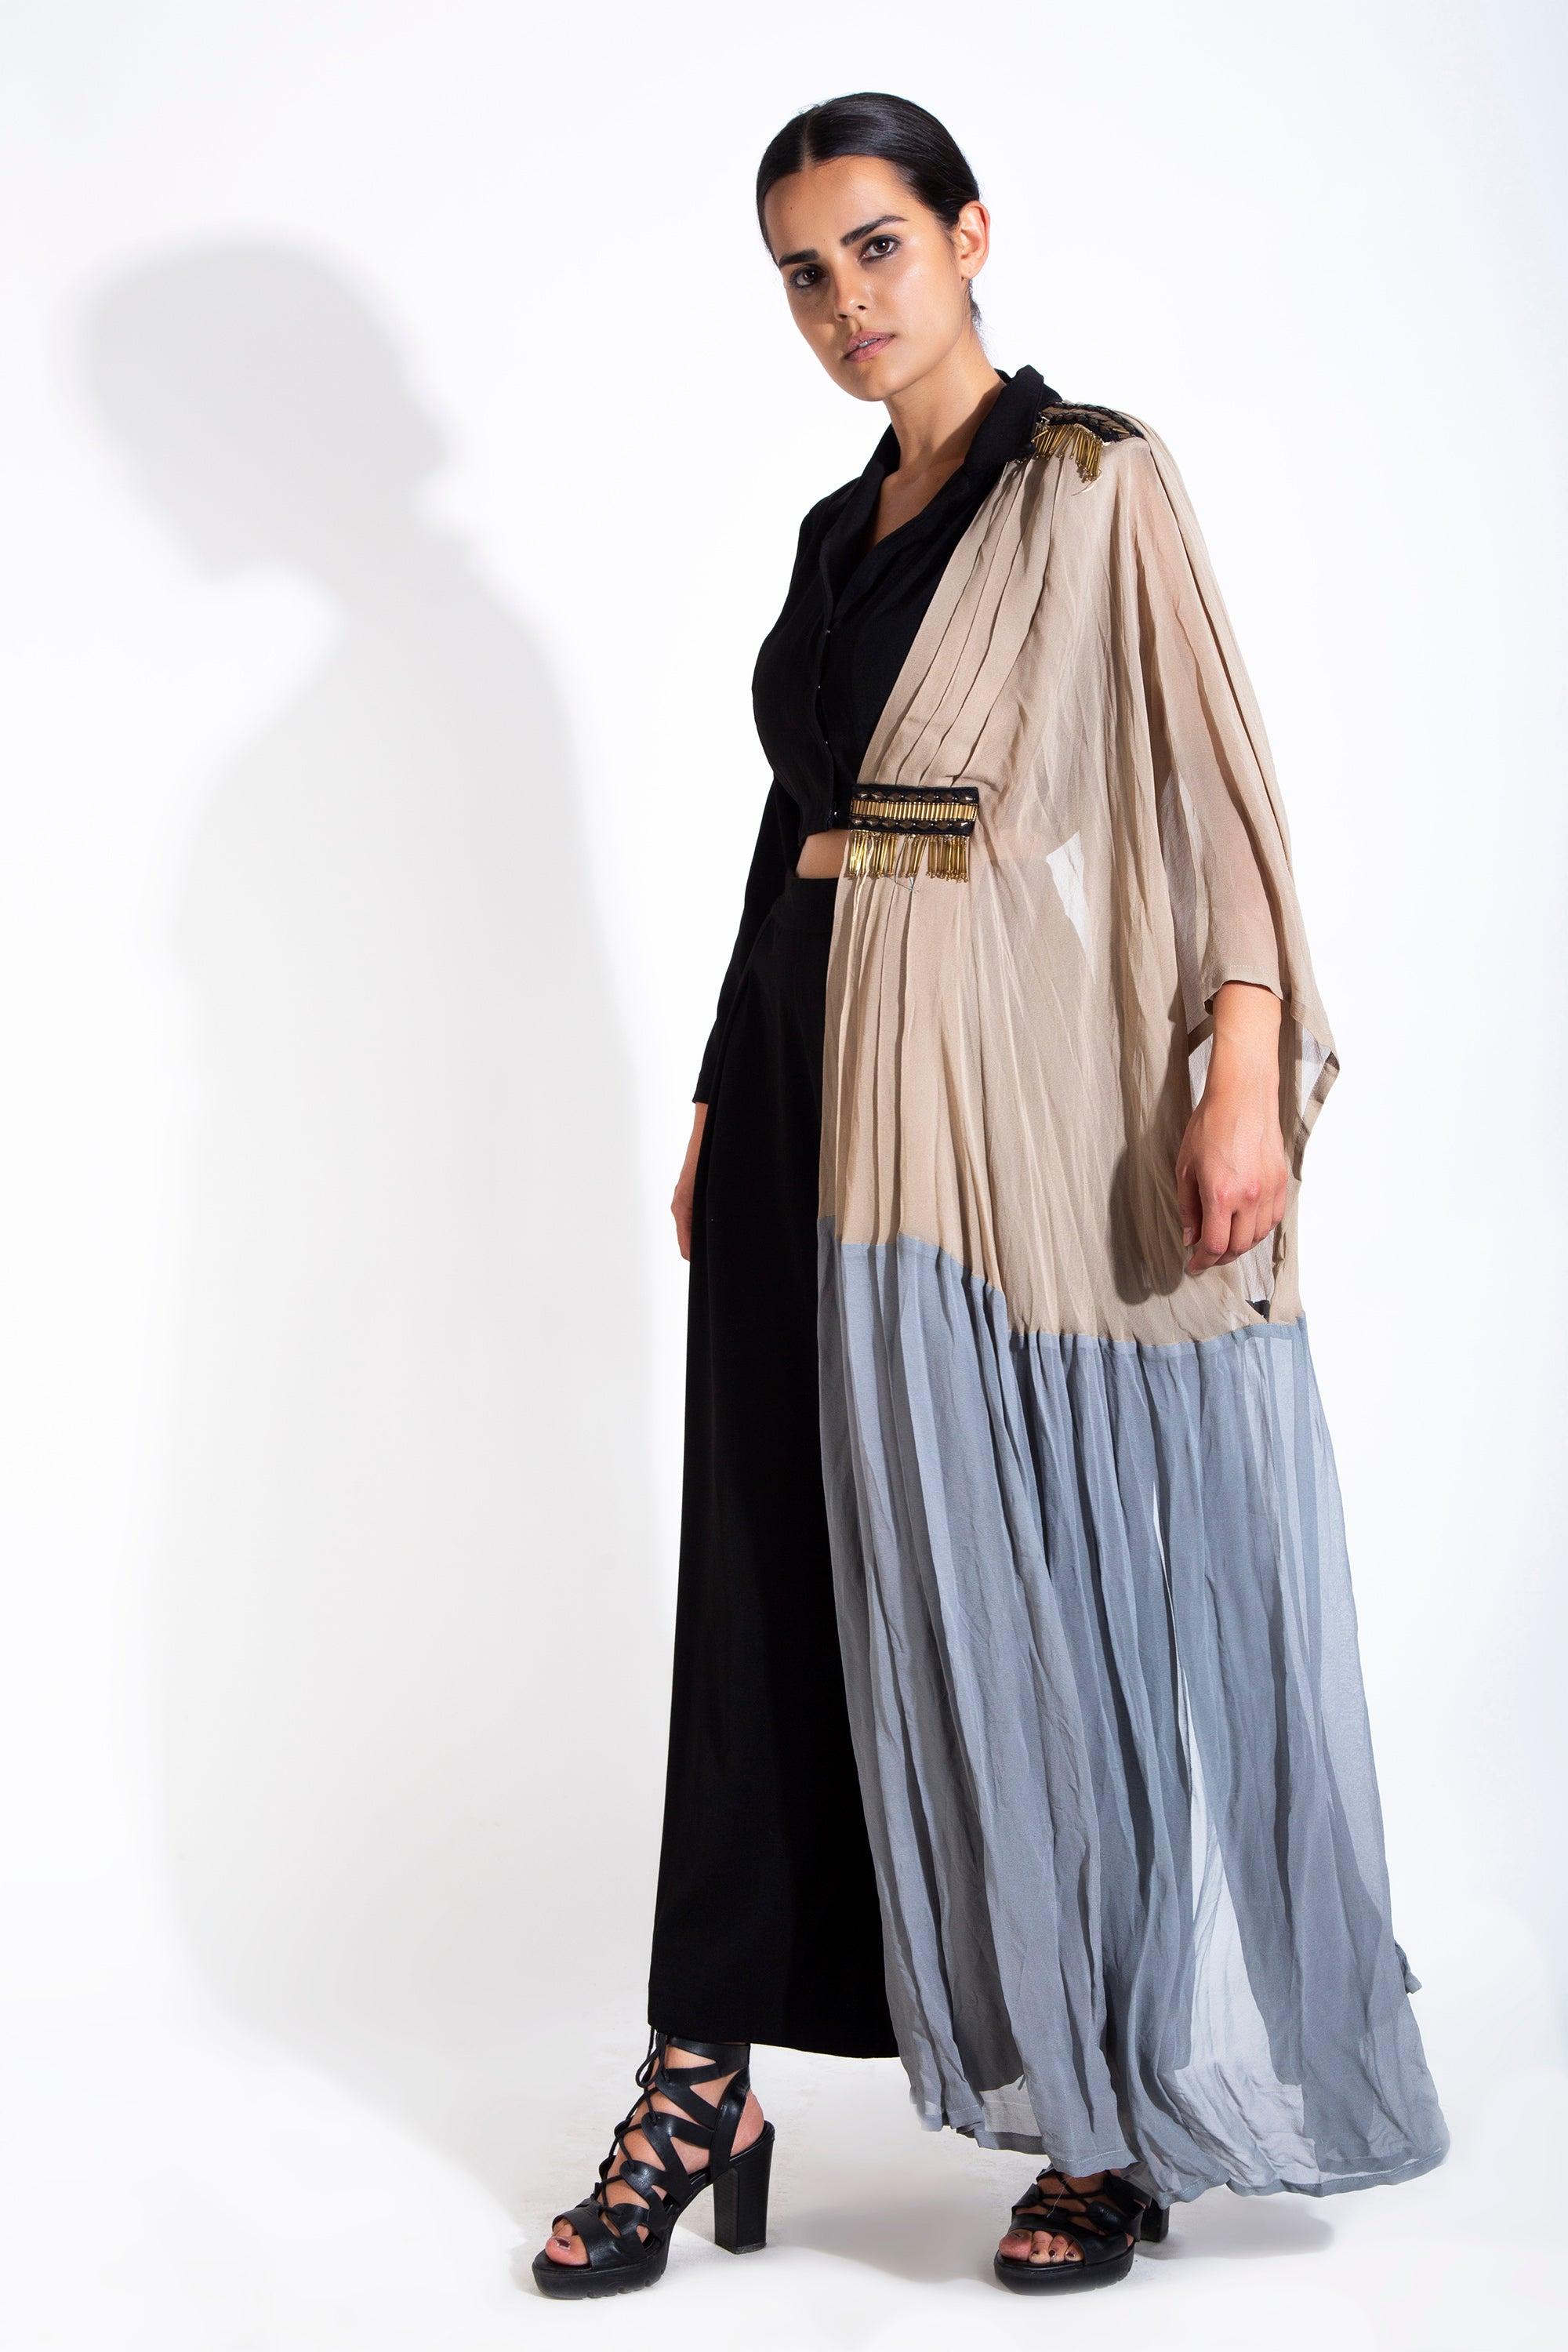 Black One-Sided Draped Shirt With Pants SIDE